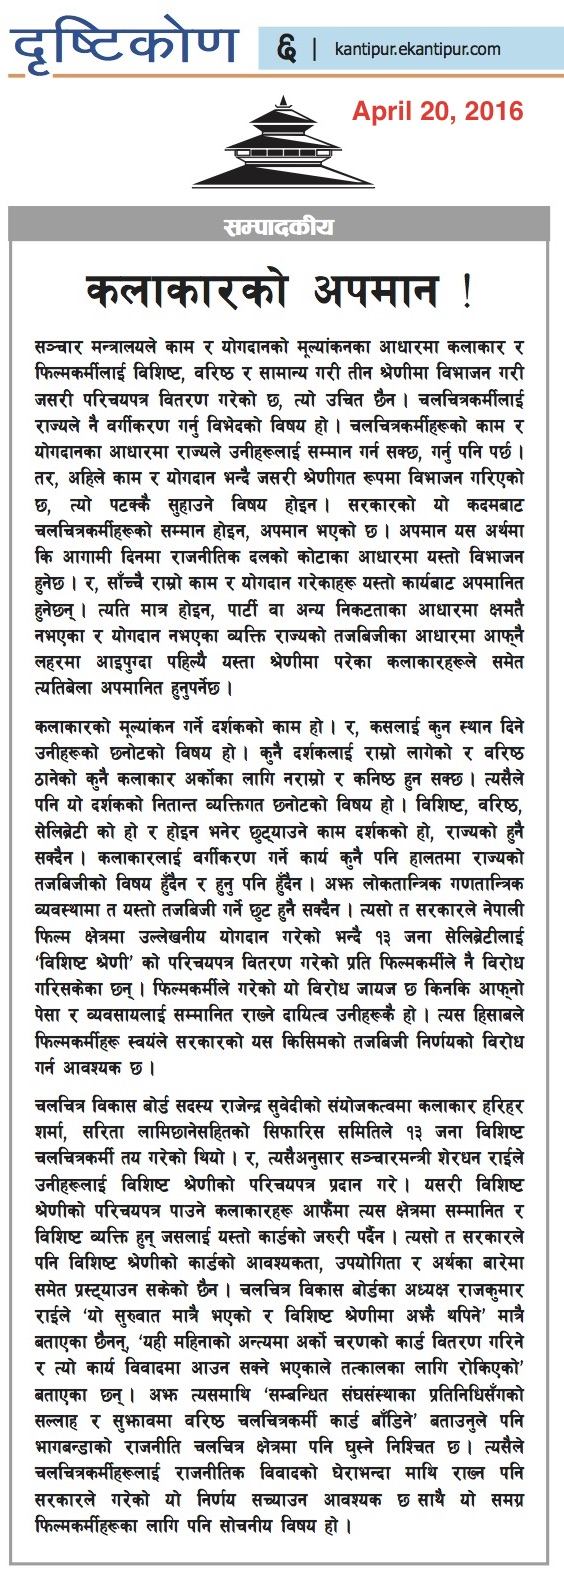 kantipur editorial about the celebrity card by the government